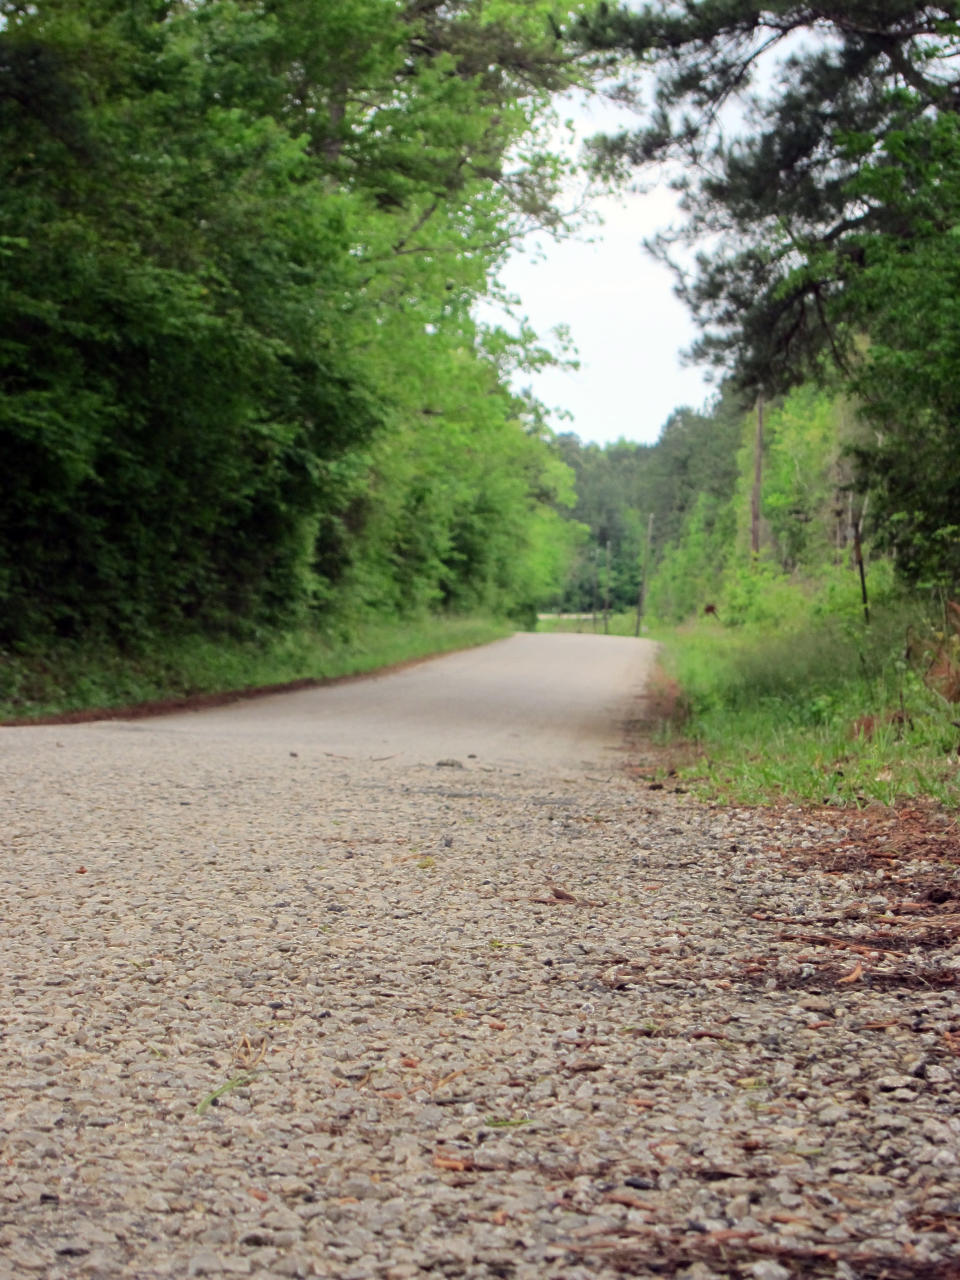 This April 12, 2019, photo shows a section of Huff Creek Road in Jasper, Texas, where James Byrd Jr., who was black, was dragged to death by three white men in what is considered one of the most gruesome hate crime murders in recent Texas history. John William King, the convicted ringleader of Byrd's death, is set to be executed on Wednesday, April. 24, 2019. (AP Photo/Juan Lozano)